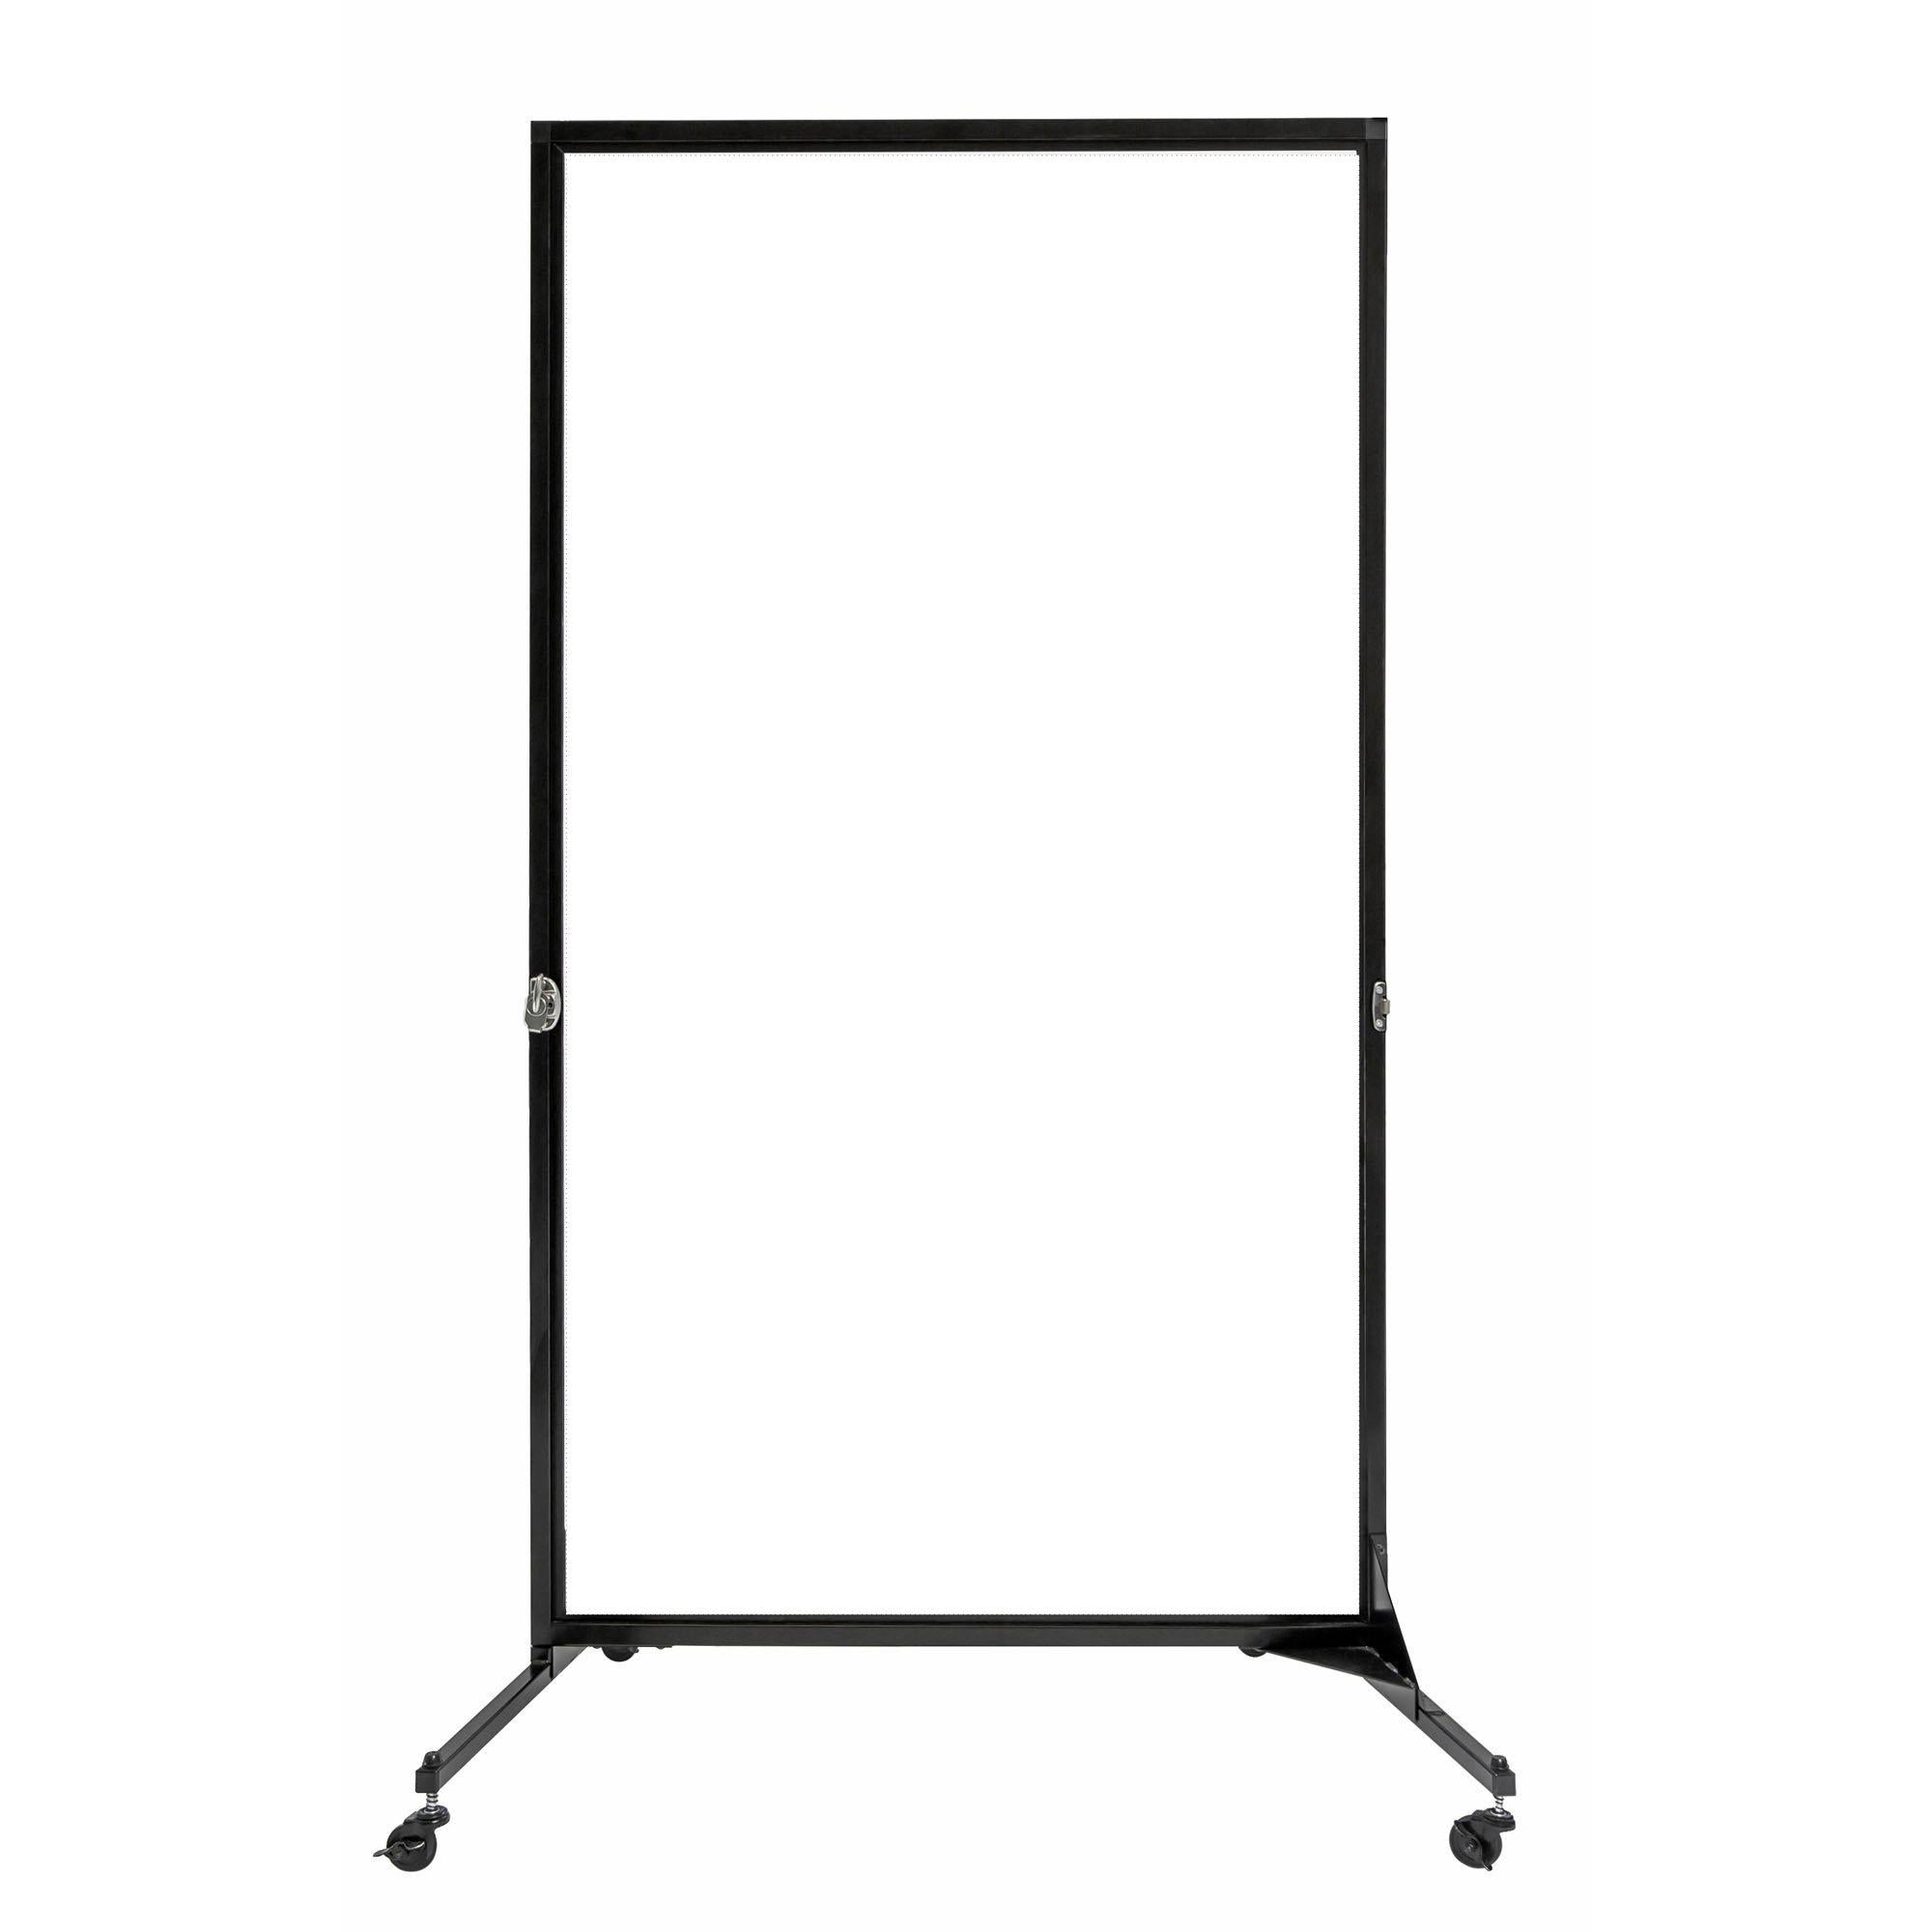 "Screenflex White Board Room Divider, 6' 2"" High"